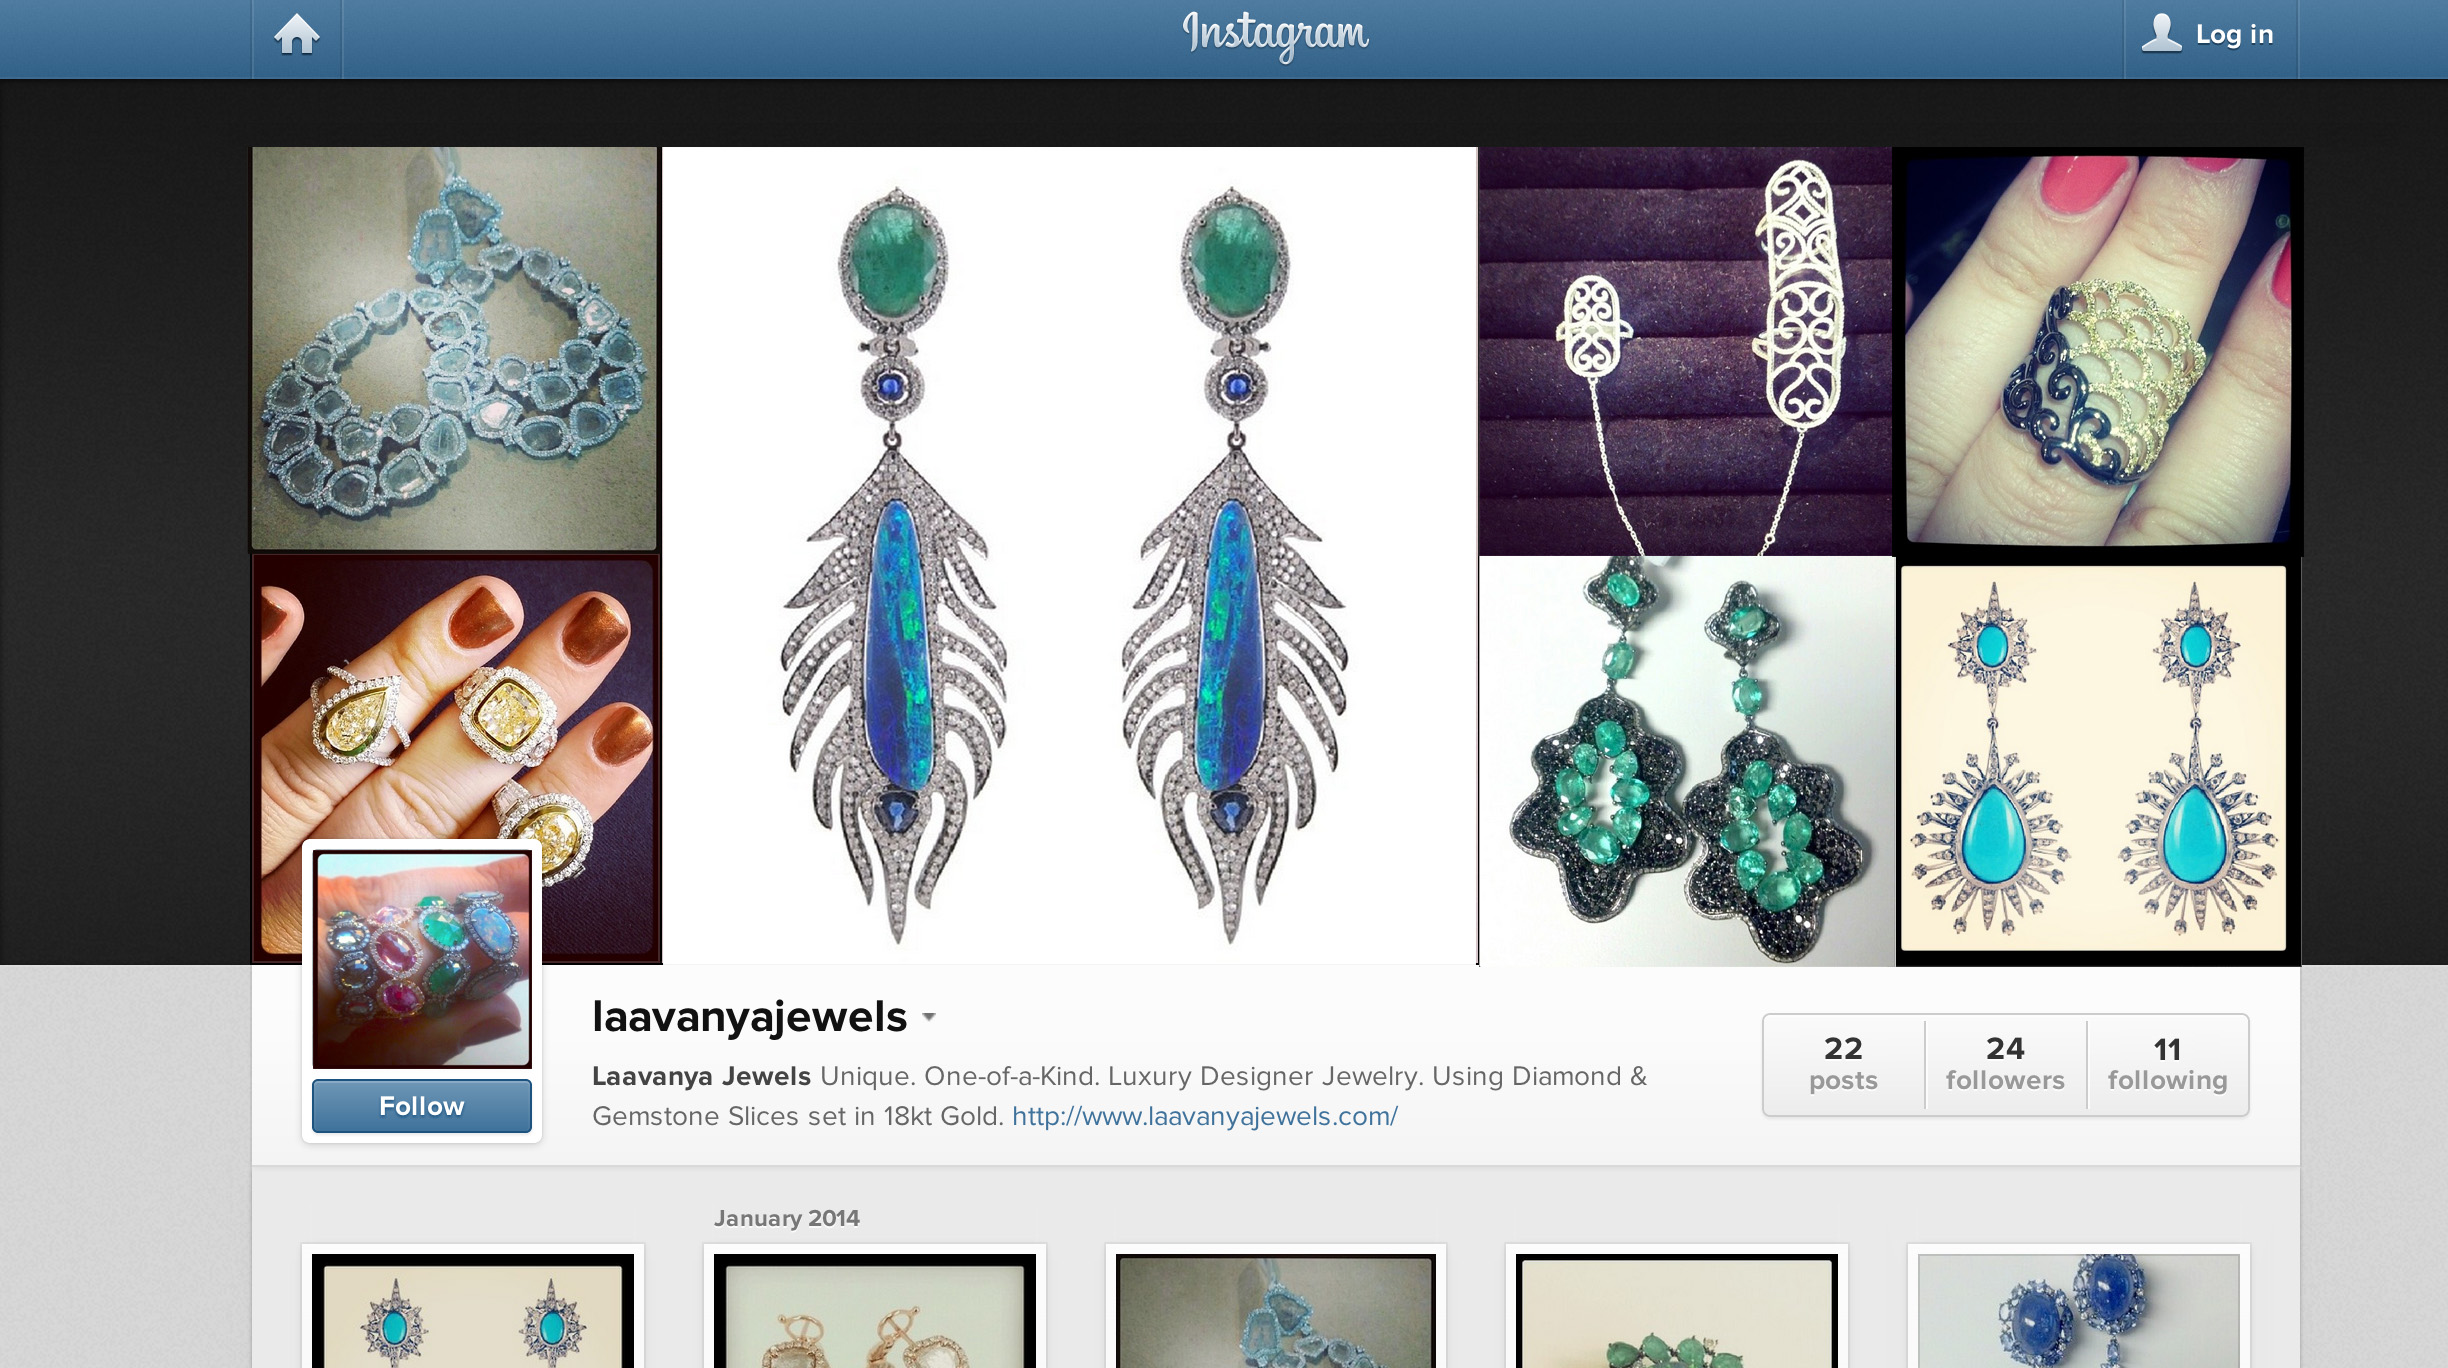 Find us online at one of our many Social Media links - pictured here is our Instagram Page.